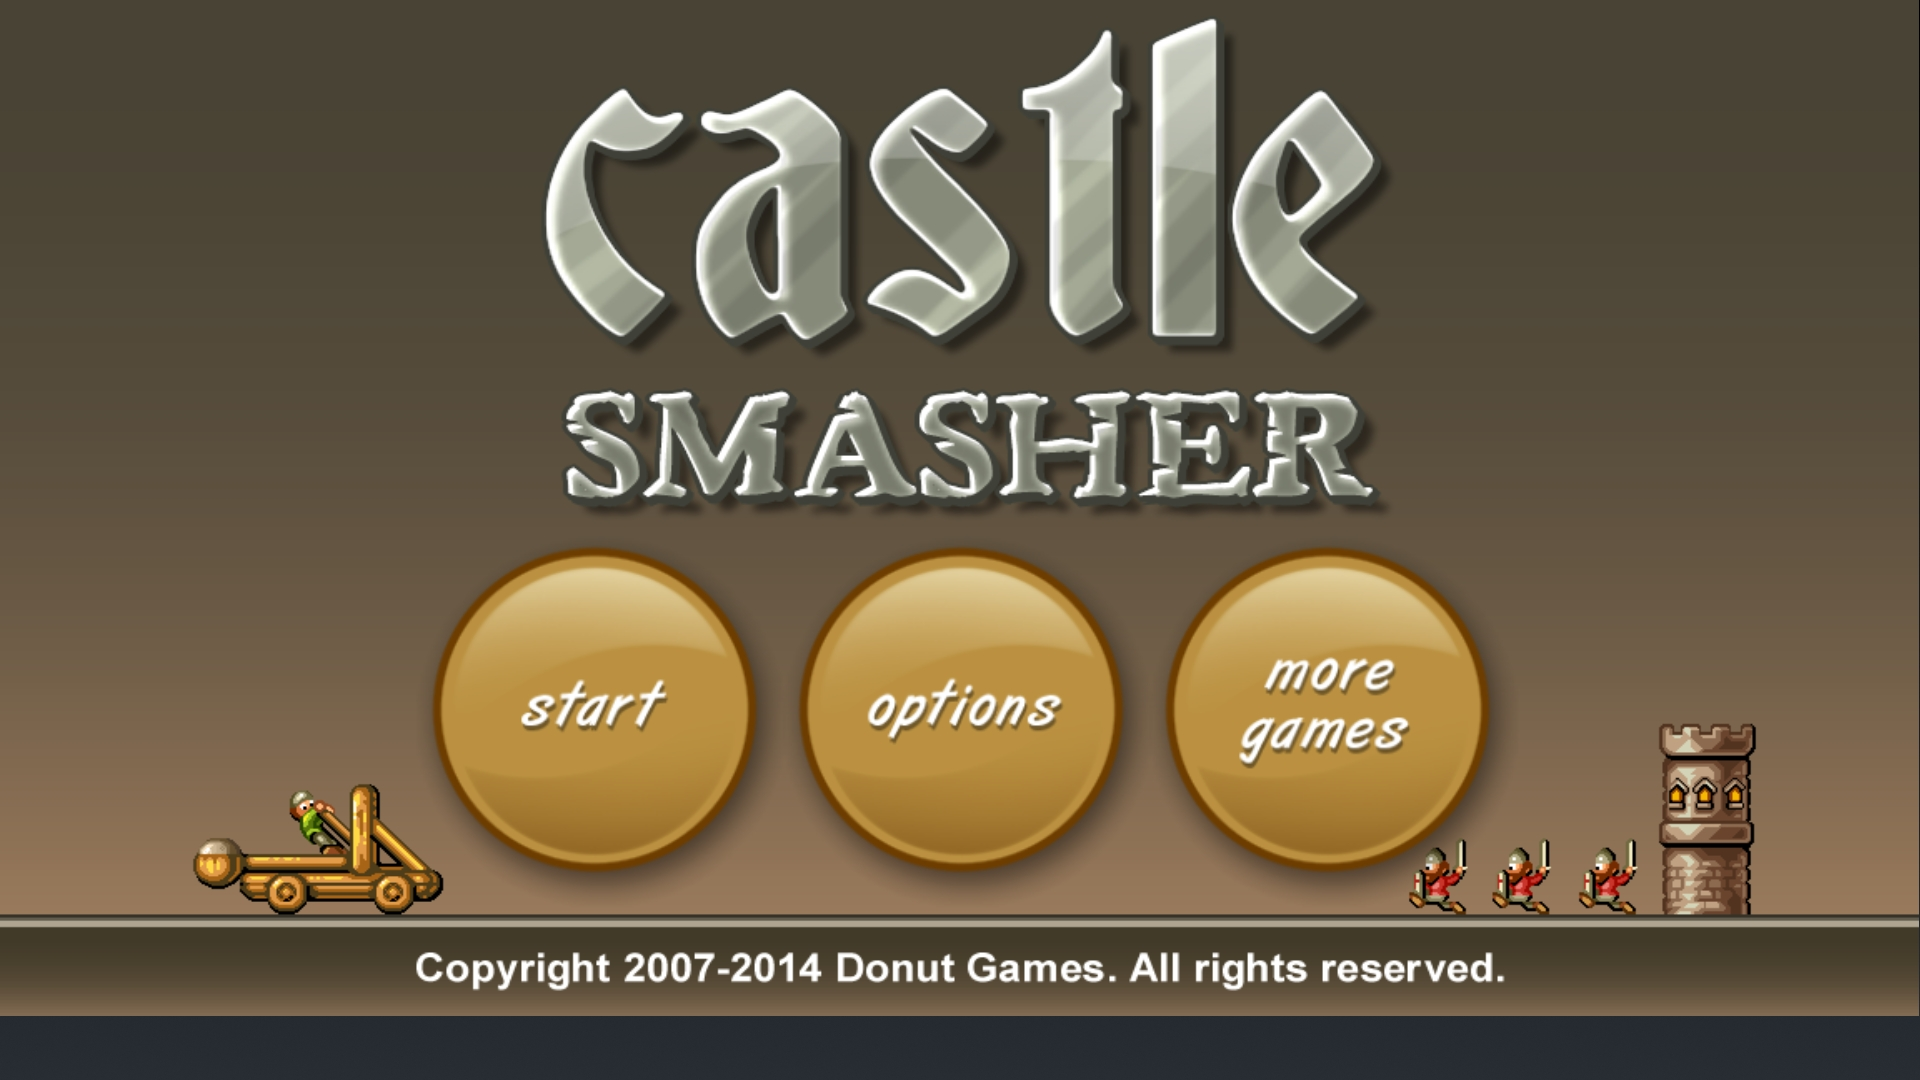 Bamse: Castle Smasher: Challenges: 02 Treasure Huntin (Android) 38 points on 2019-08-21 17:06:20